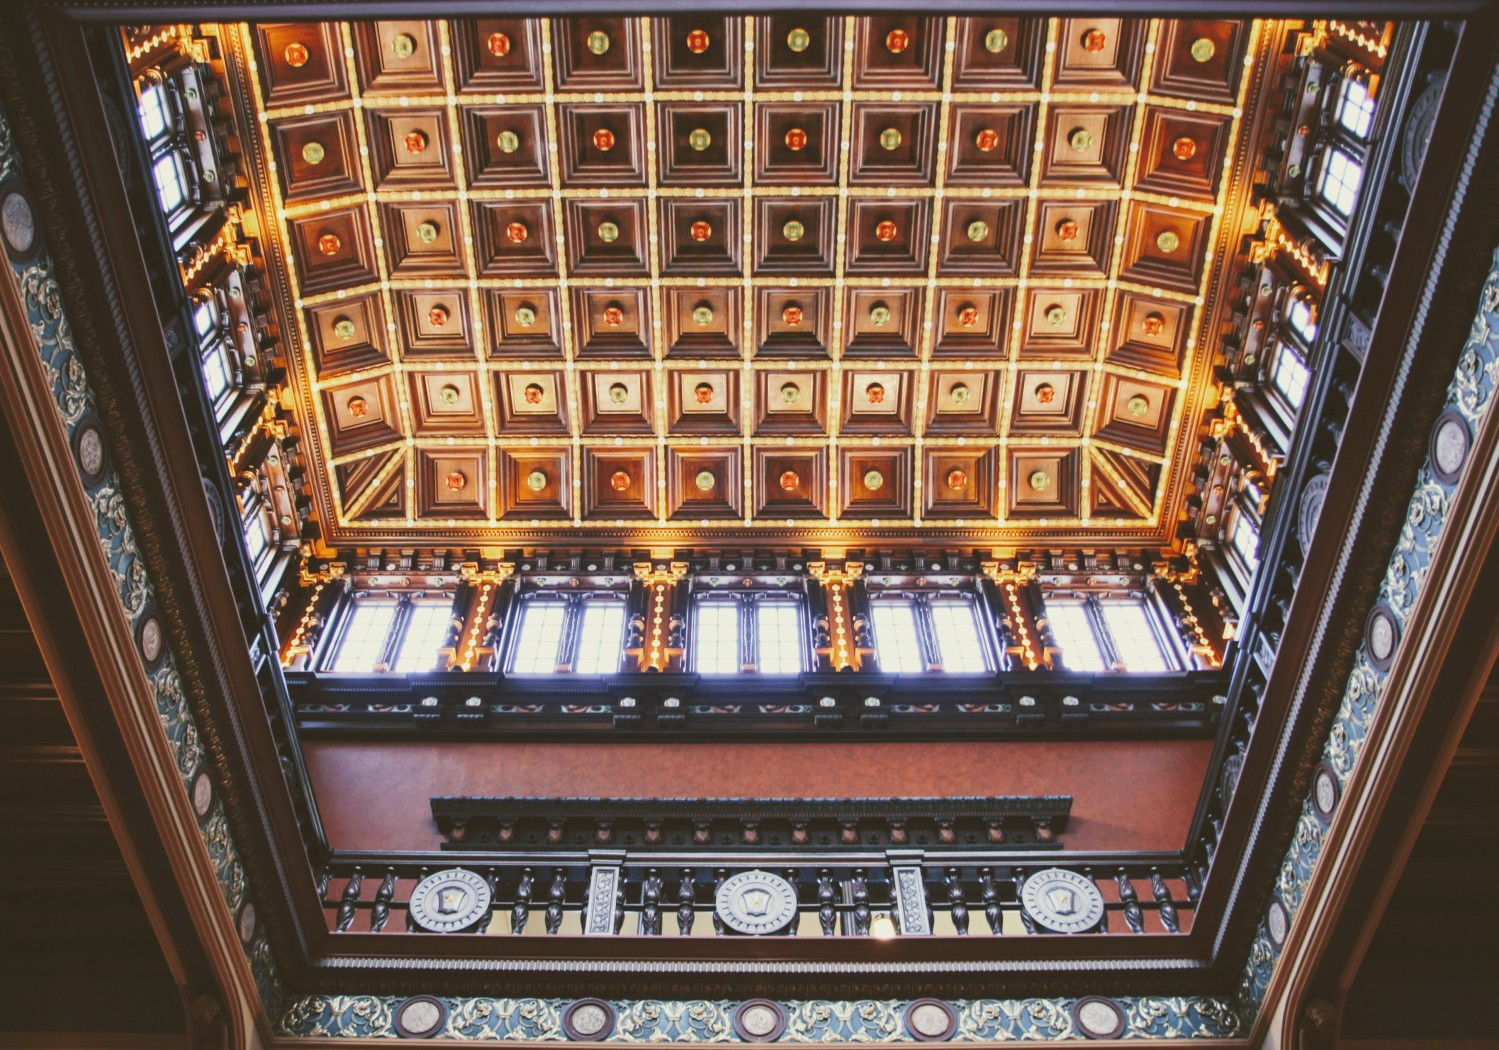 Image of the ceiling at the The Julia Ideson Building in Downtown Houston, Texas